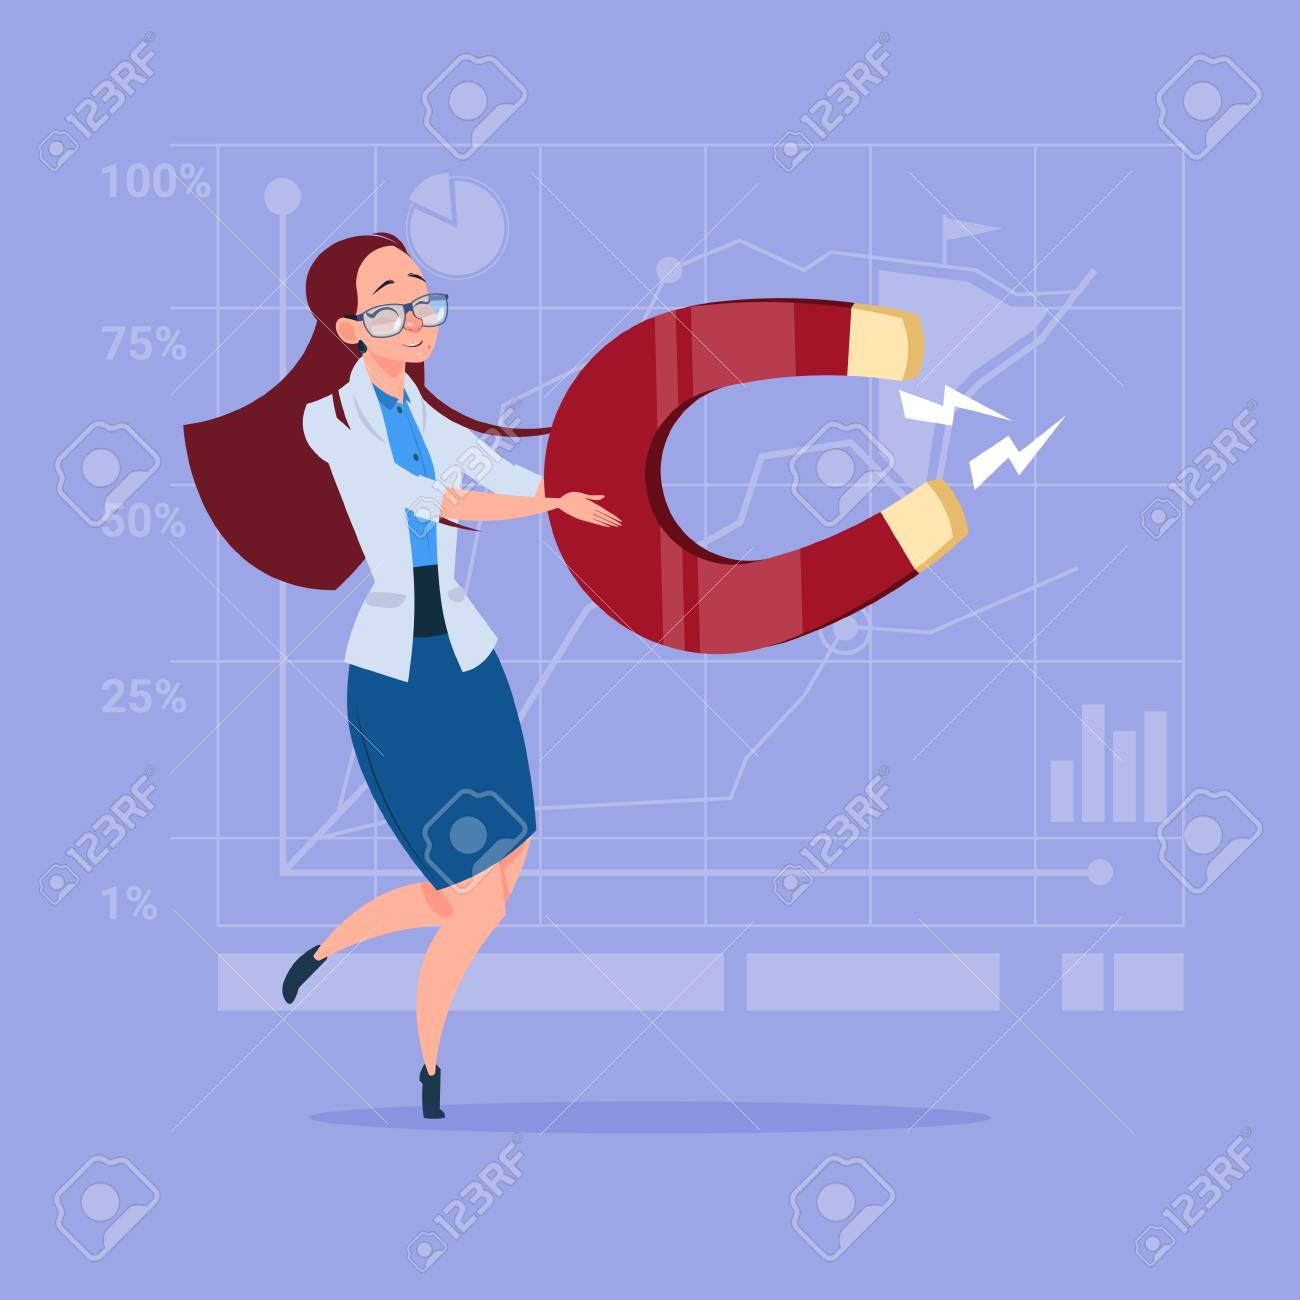 Business Woman Holding Magnet Pulling Success Ideas Concept Royalty Free Cliparts Vectors And Stock Illustration Image 81321417